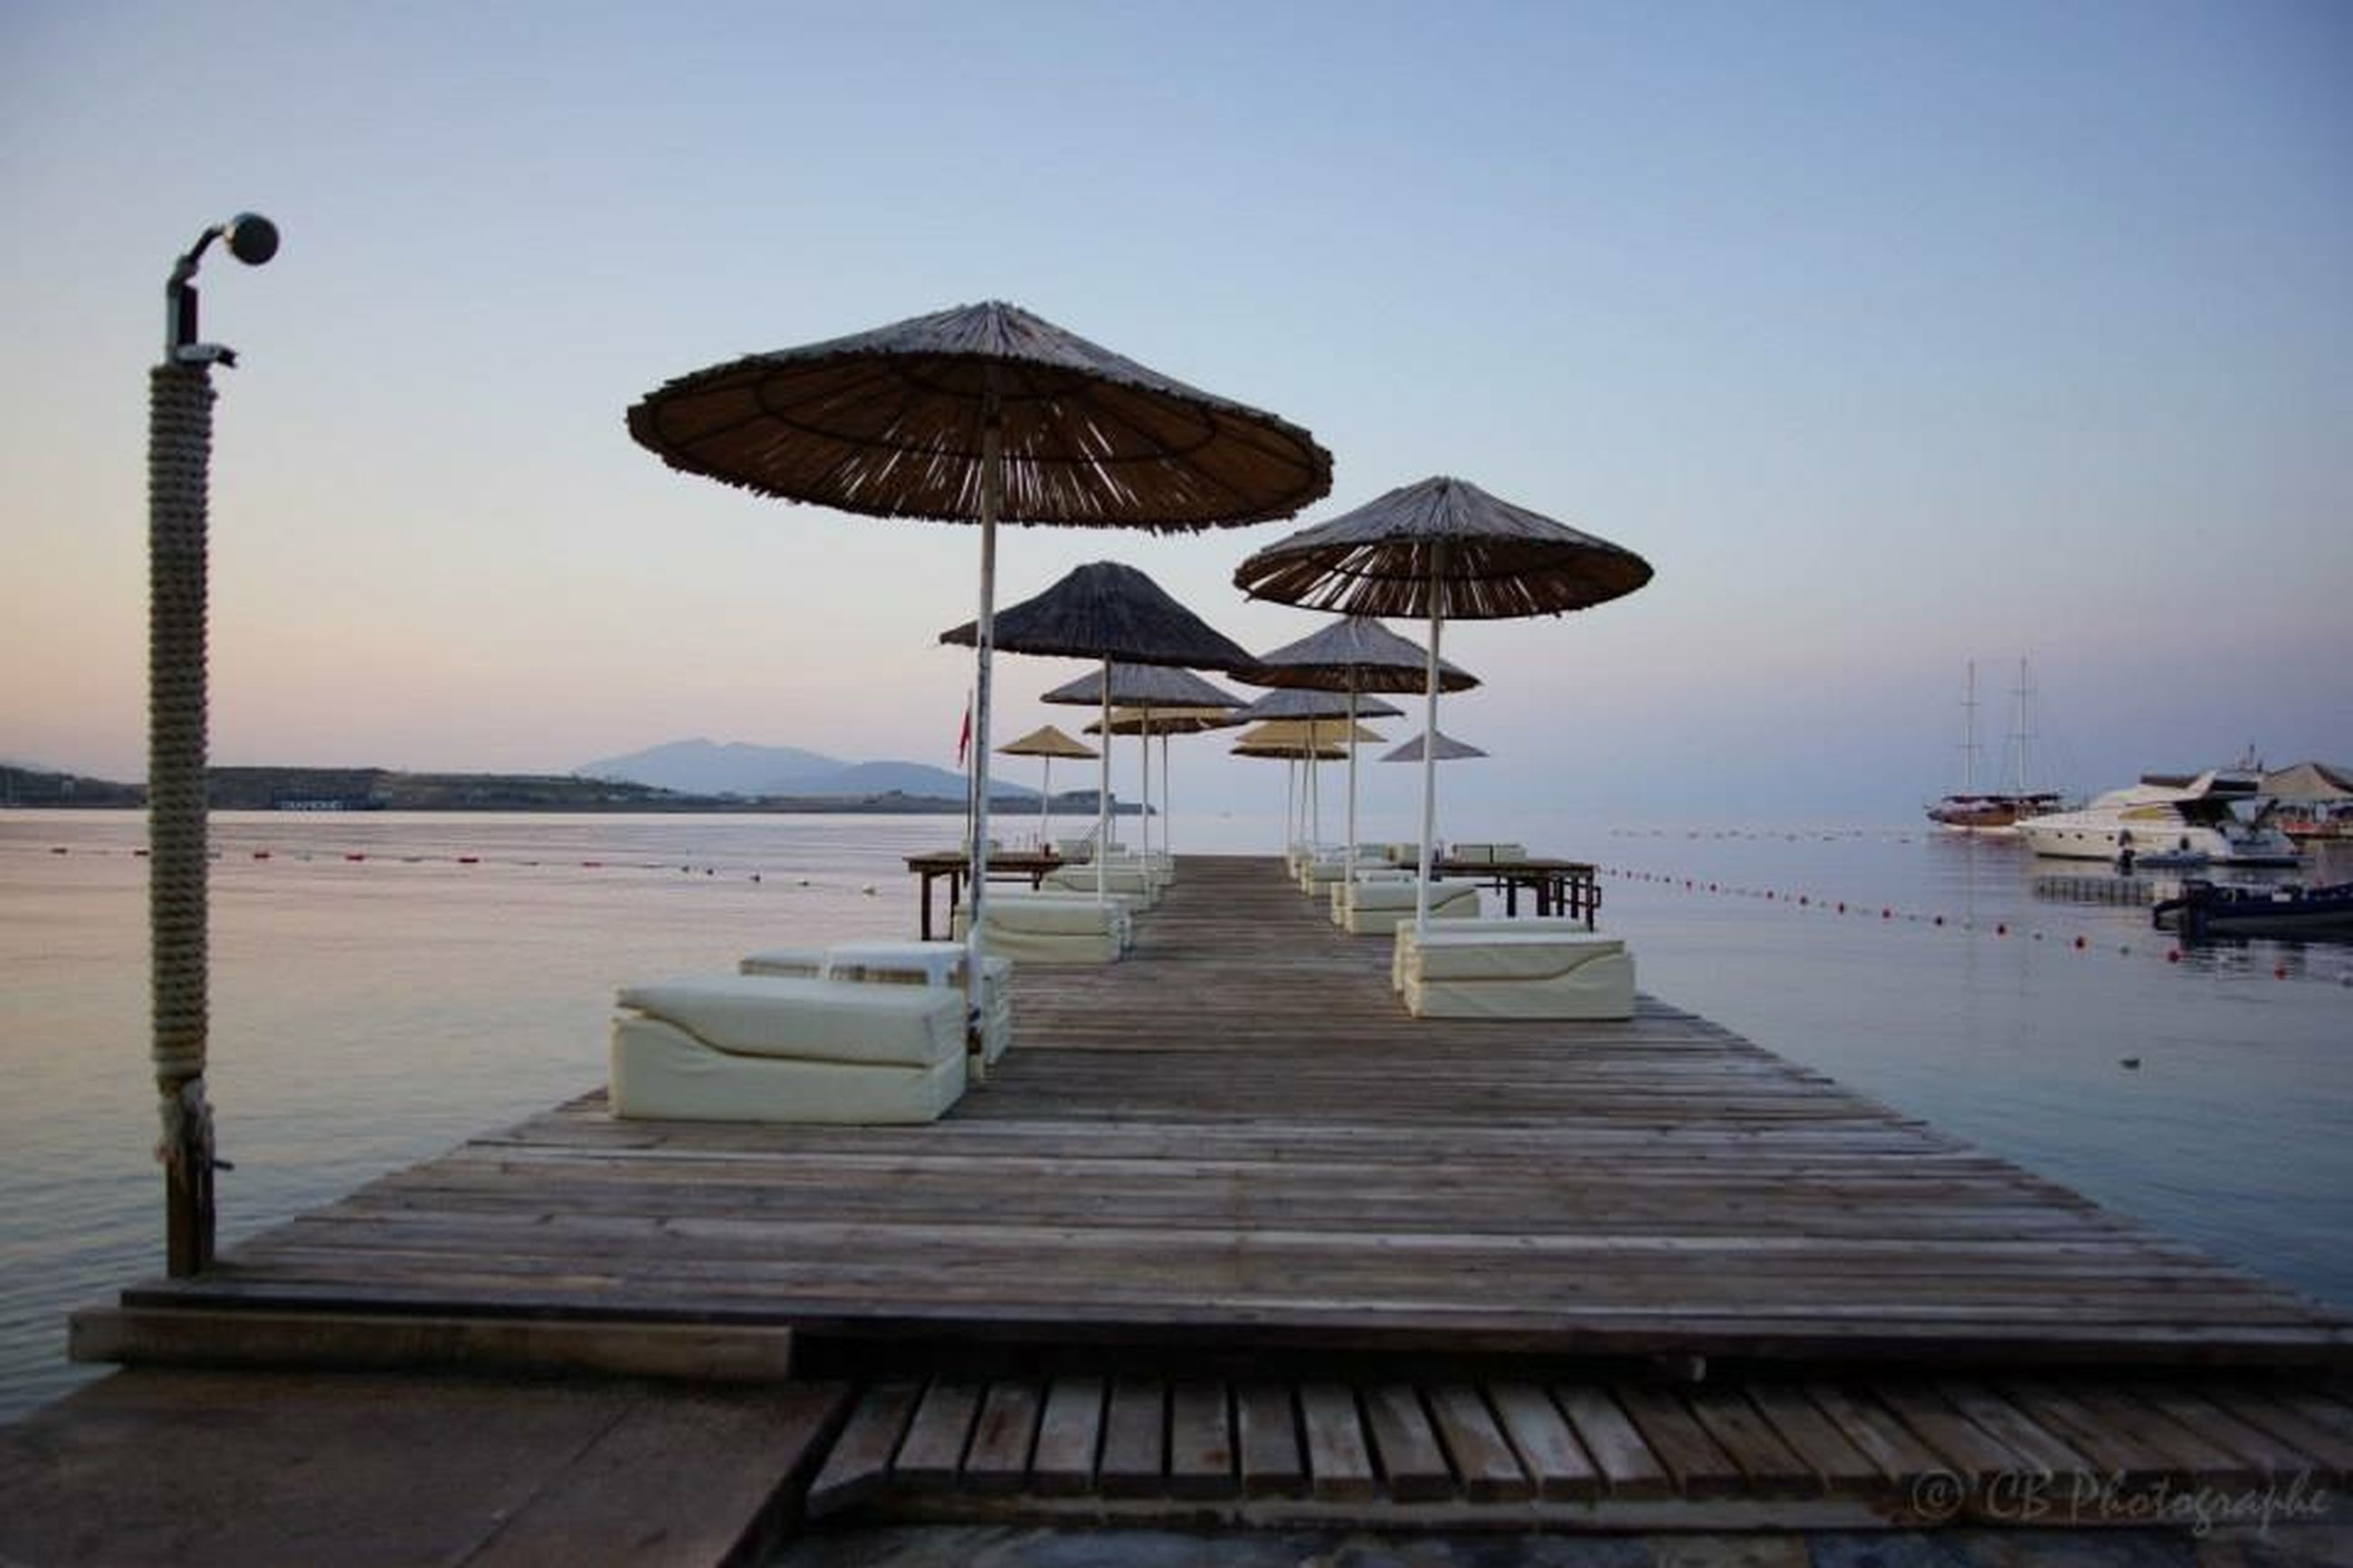 water, clear sky, sea, pier, tranquility, tranquil scene, empty, gazebo, chair, bench, absence, sky, wood - material, moored, scenics, nature, in a row, jetty, outdoors, nautical vessel